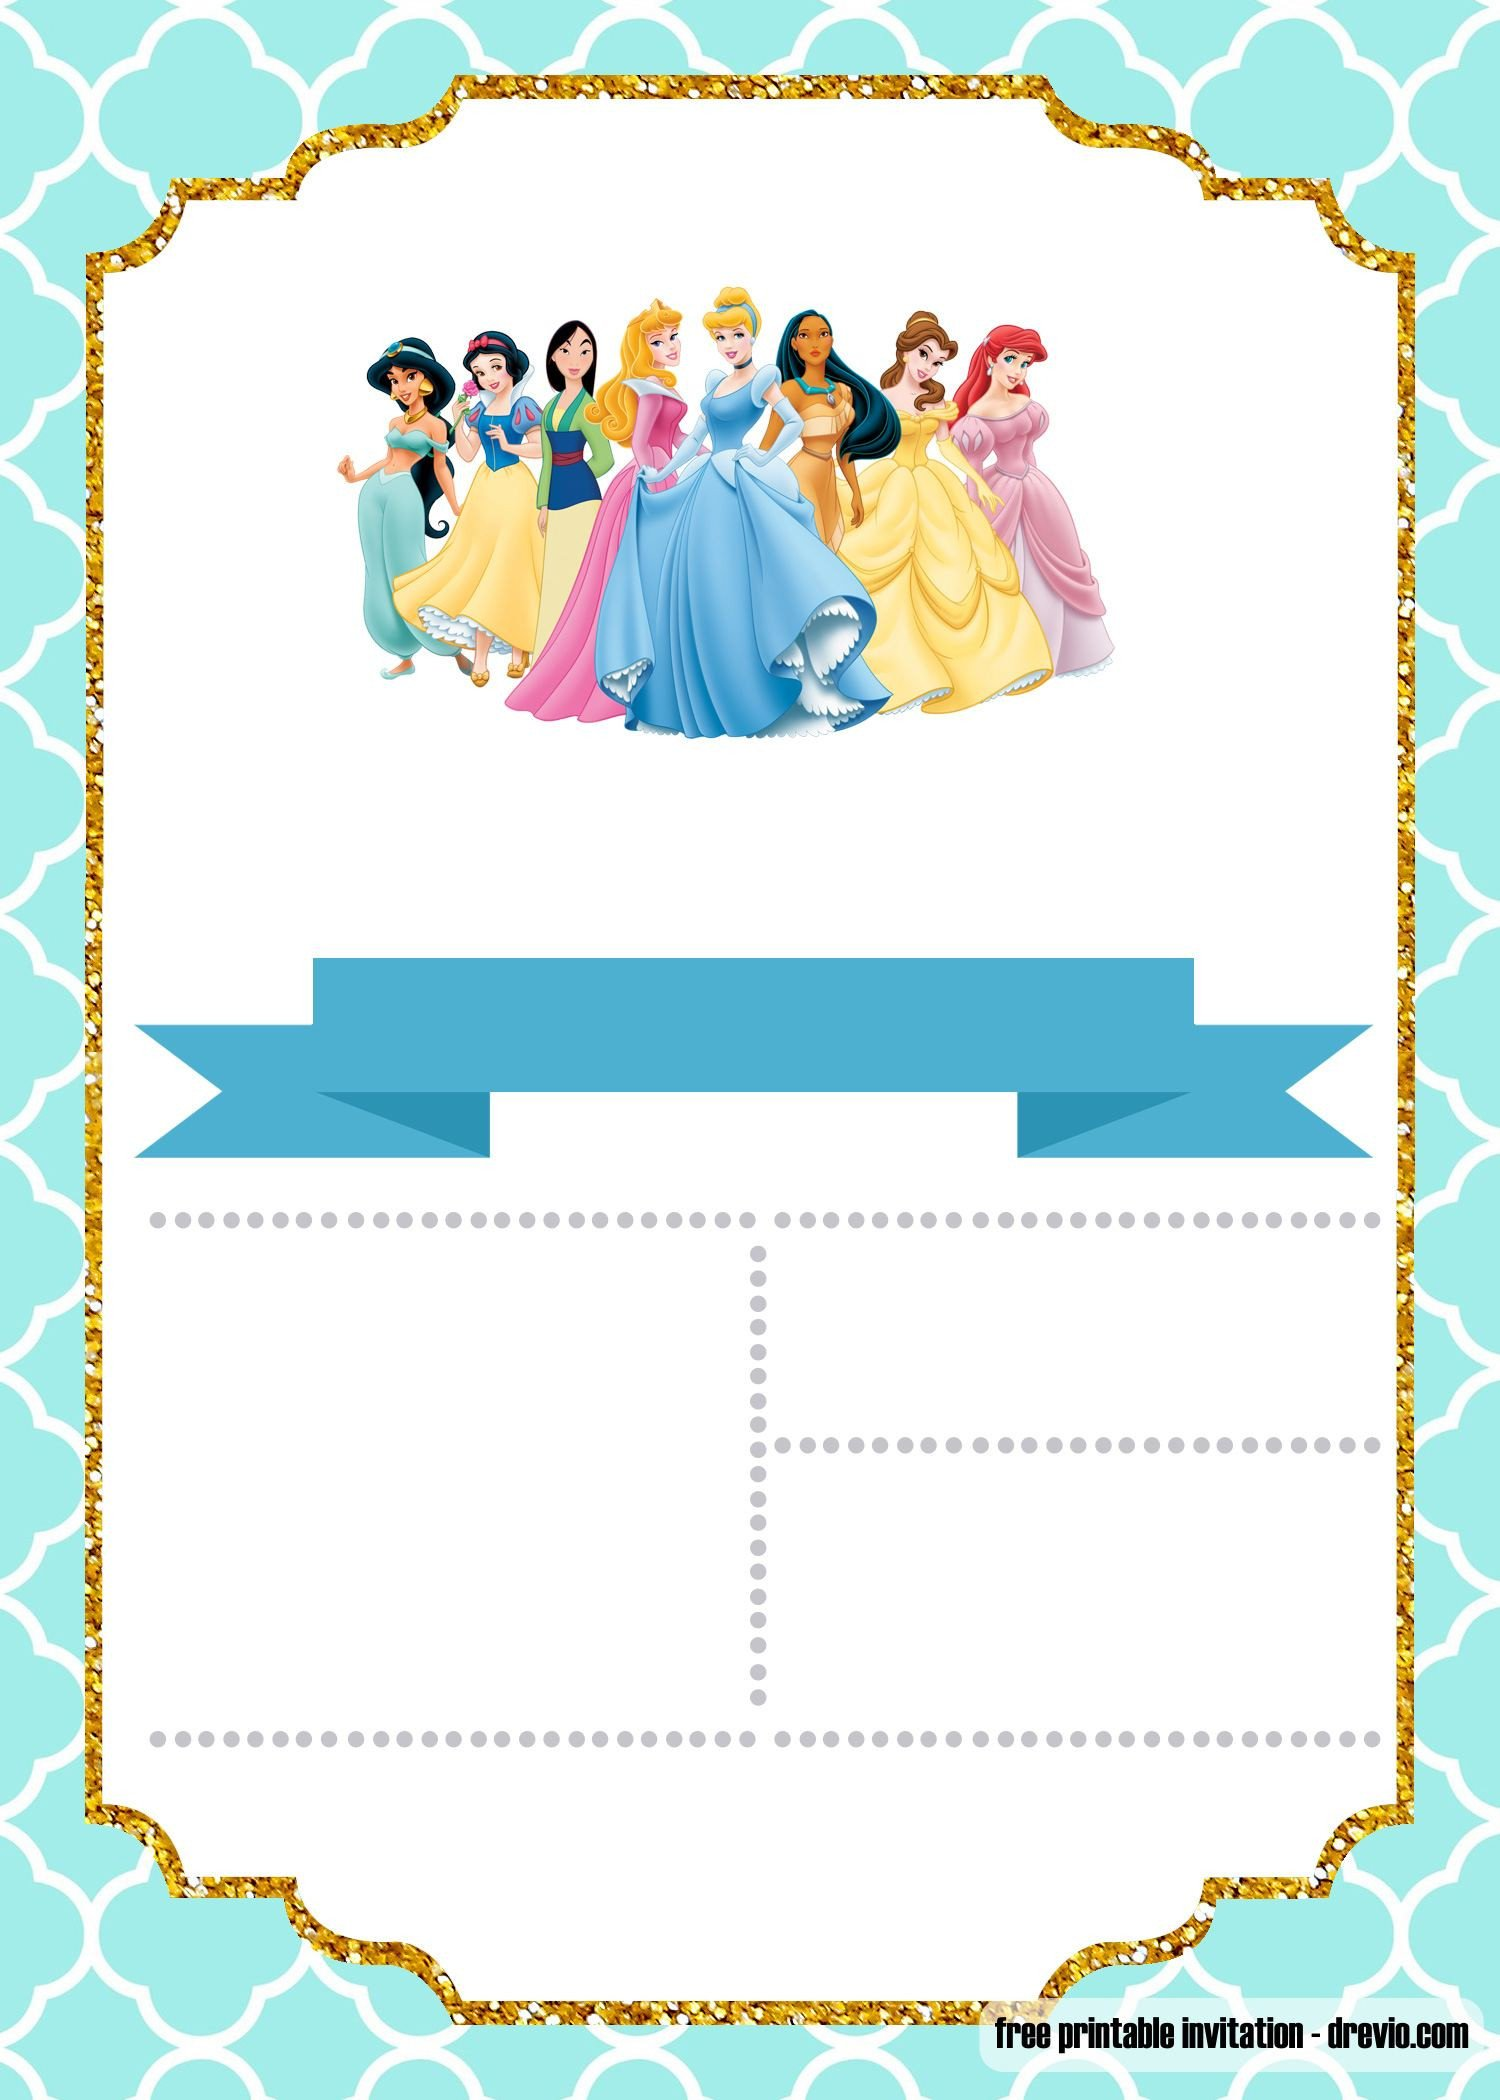 Disney Princess Invitation Template Free Disney Princess Invitation Template for Your Little